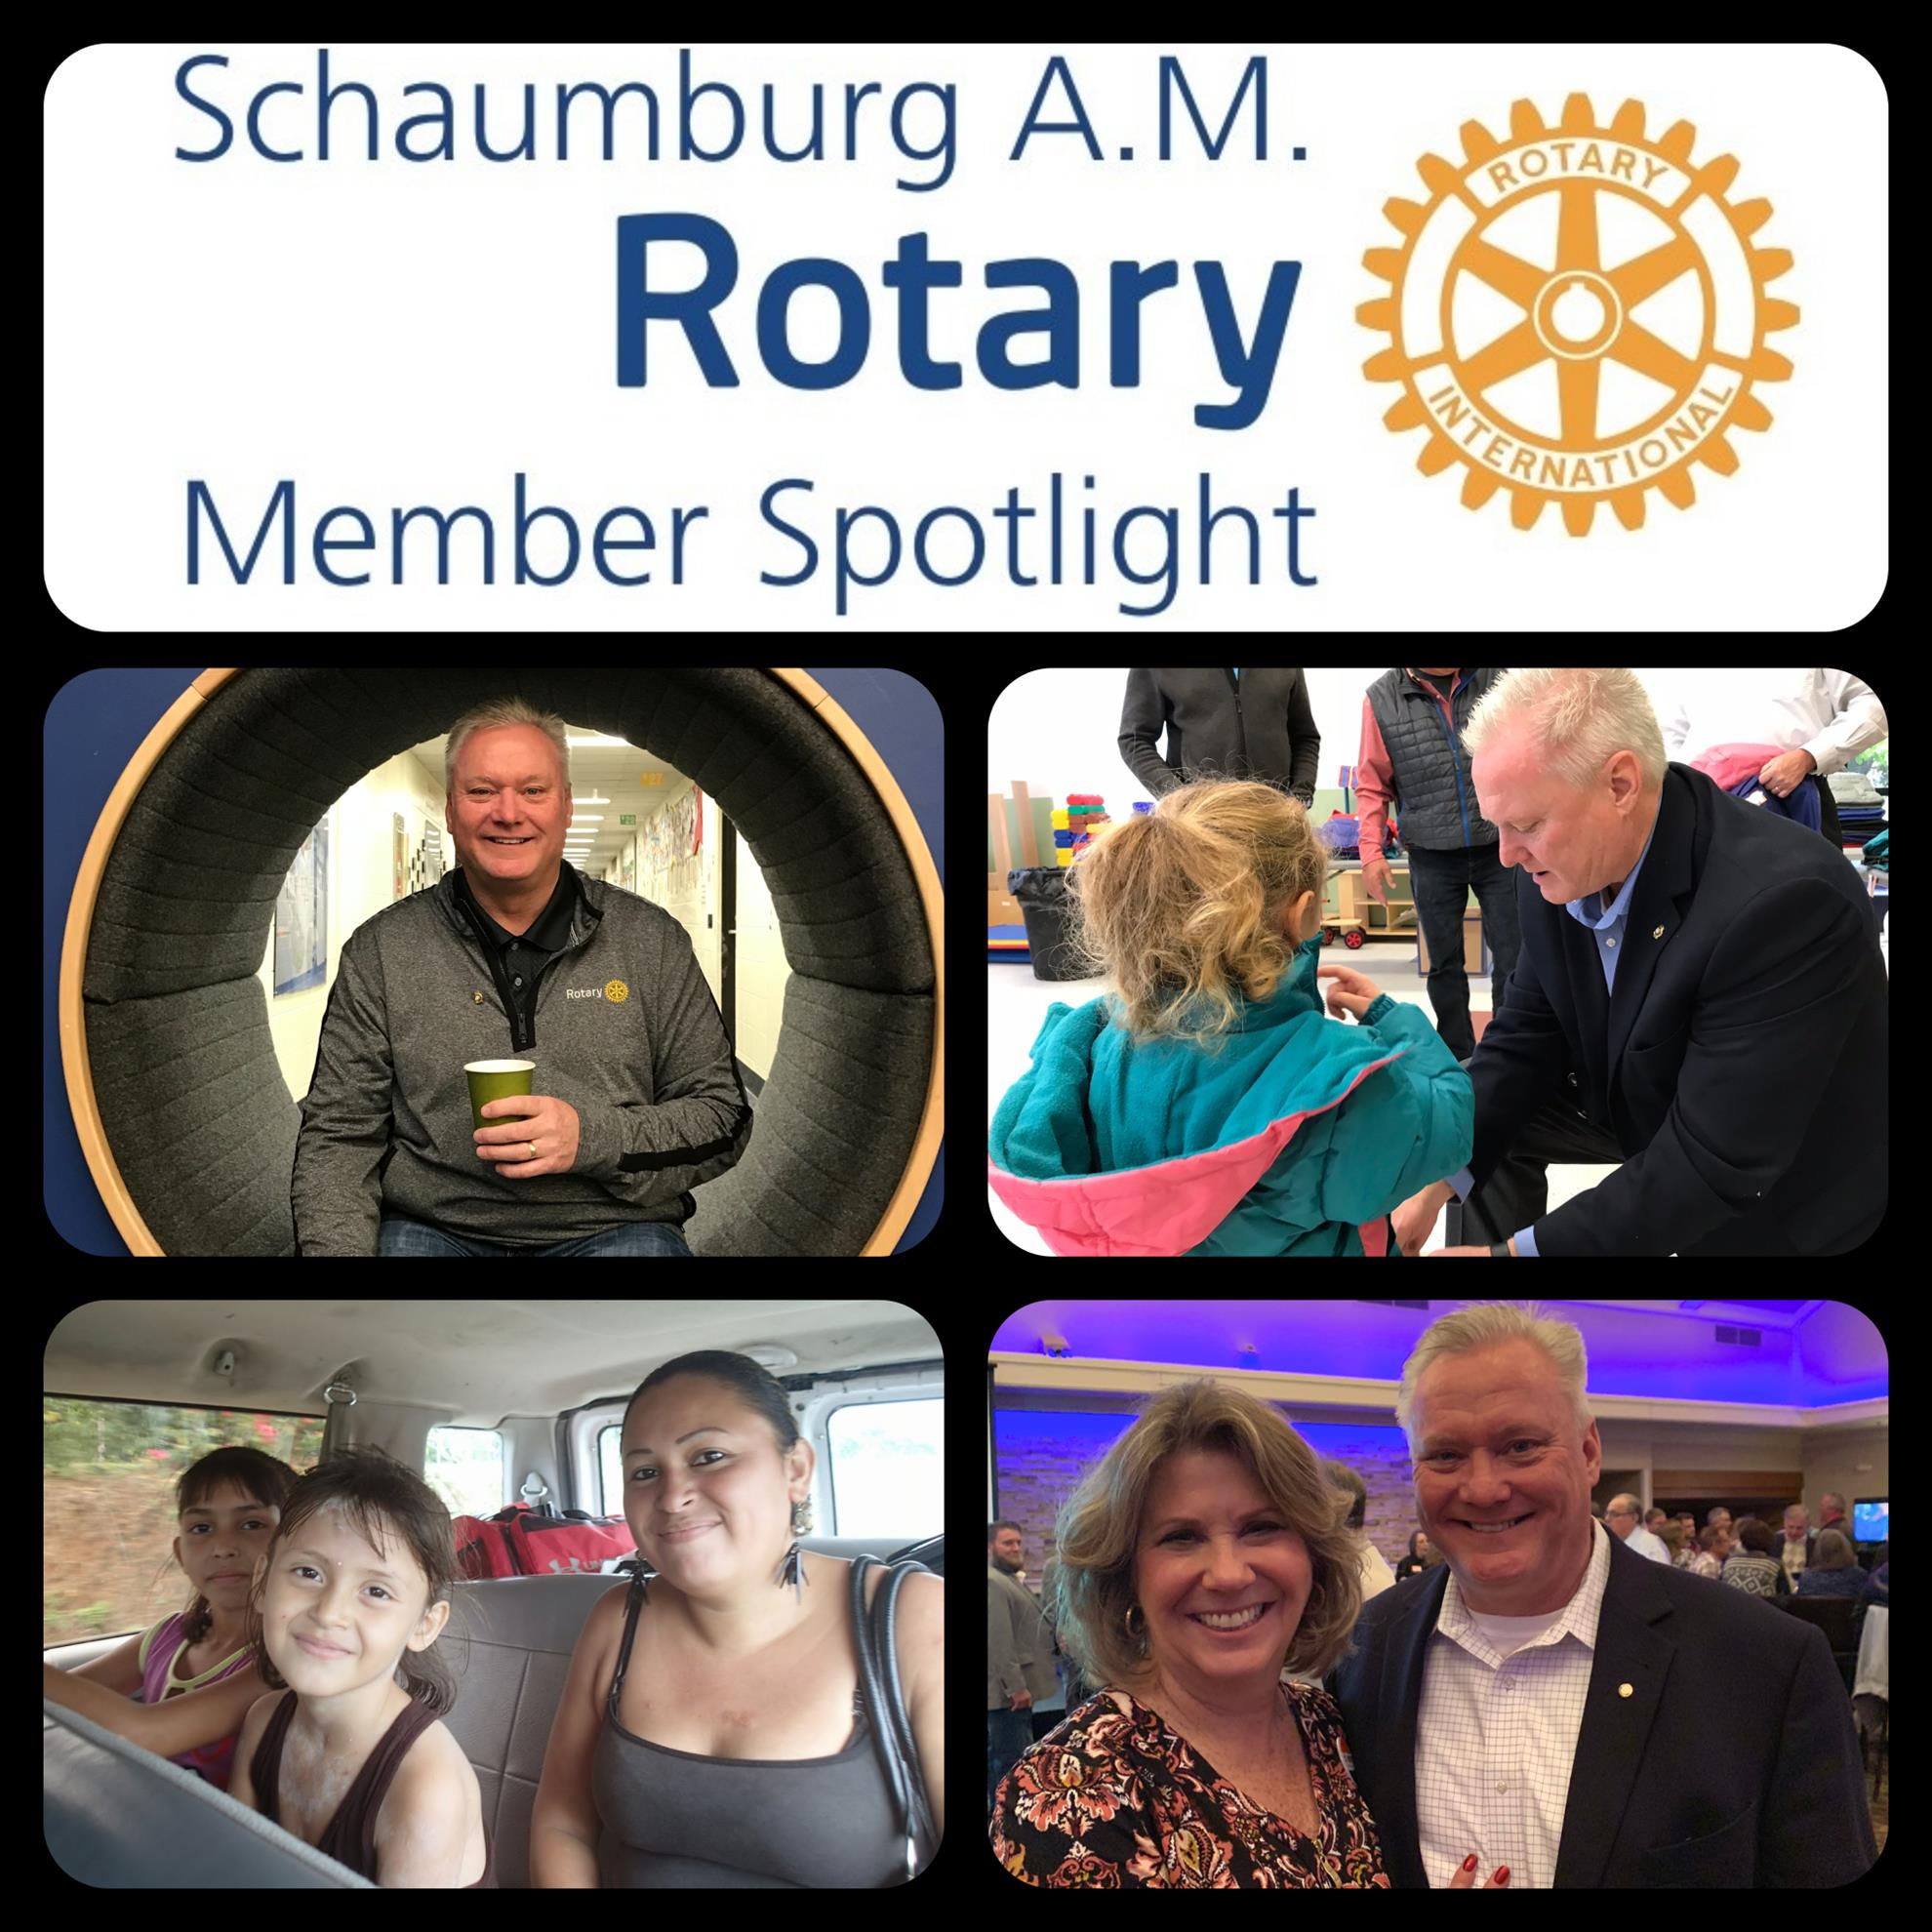 Stories | Rotary Club of Schaumburg A M